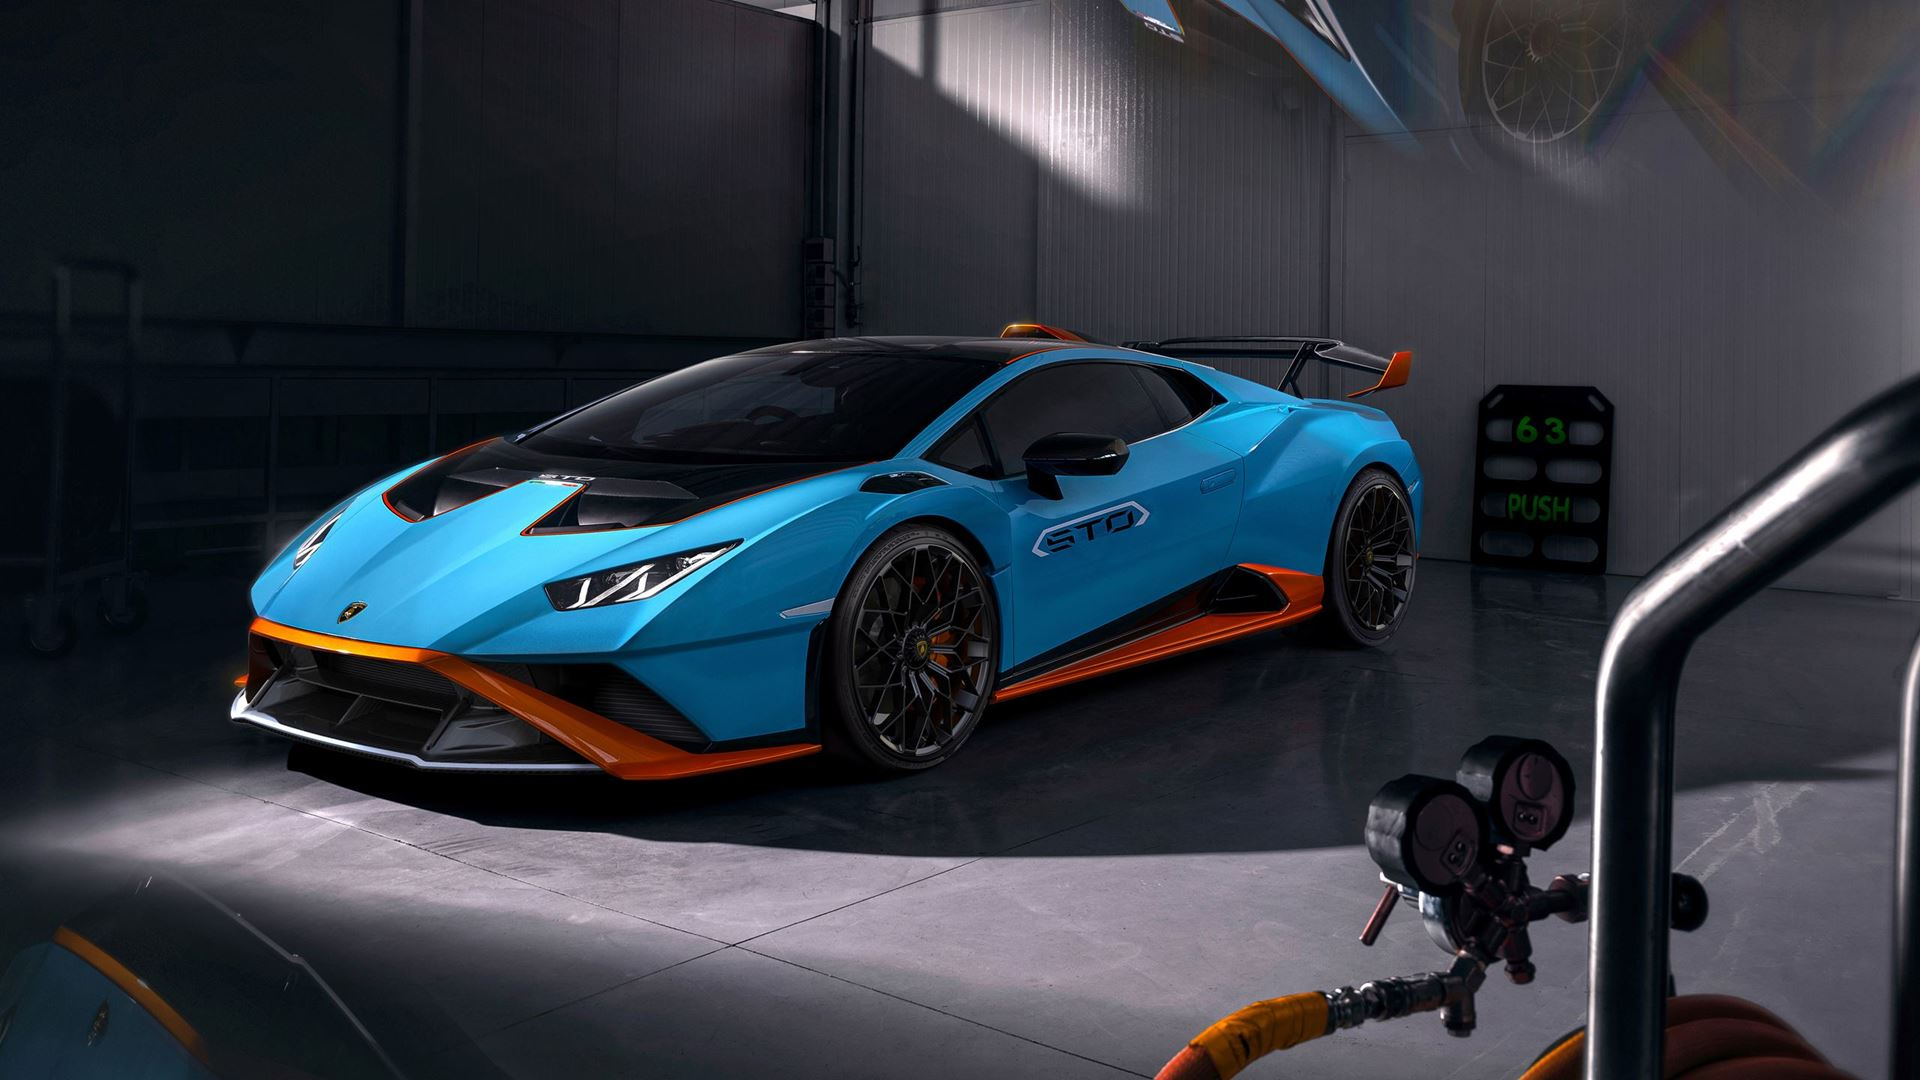 Lamborghini debuts in the Rocket League video game with the Huracán STO - Image 3